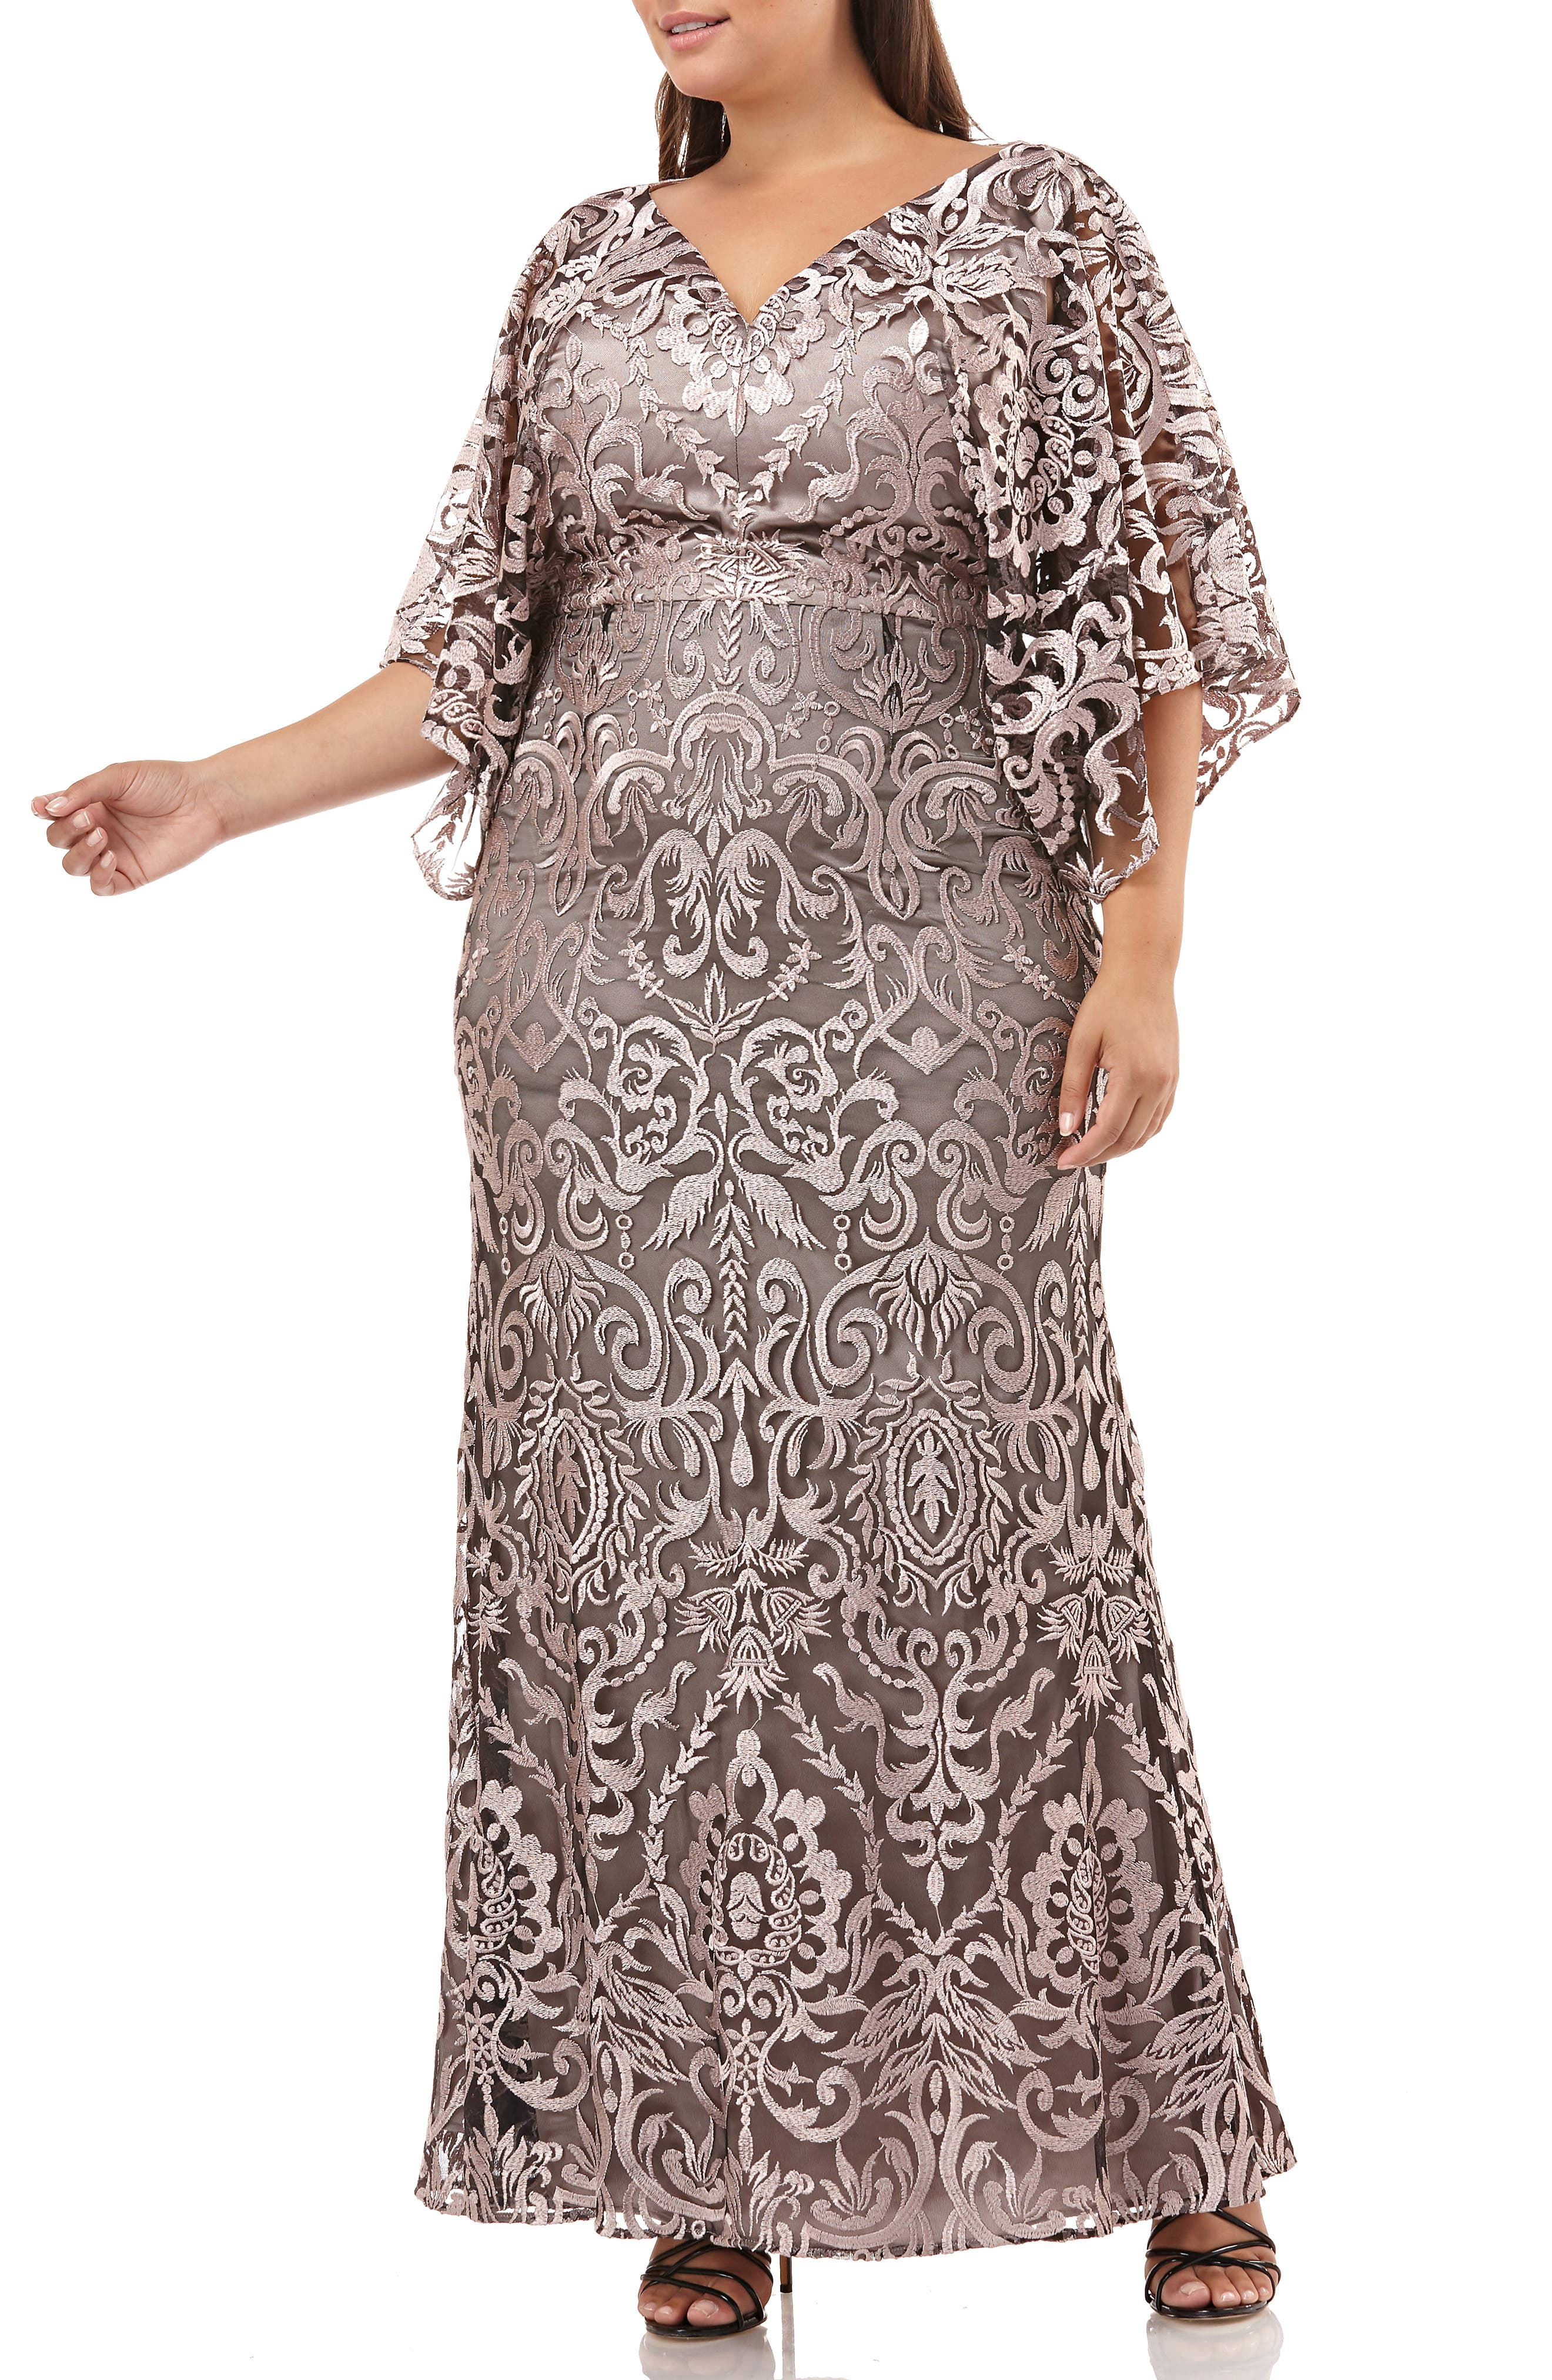 Valentines Day Dresses, Outfits, Lingerie | Red Dresses Plus Size Womens Js Collections Embroidered Lace Evening Dress $358.00 AT vintagedancer.com